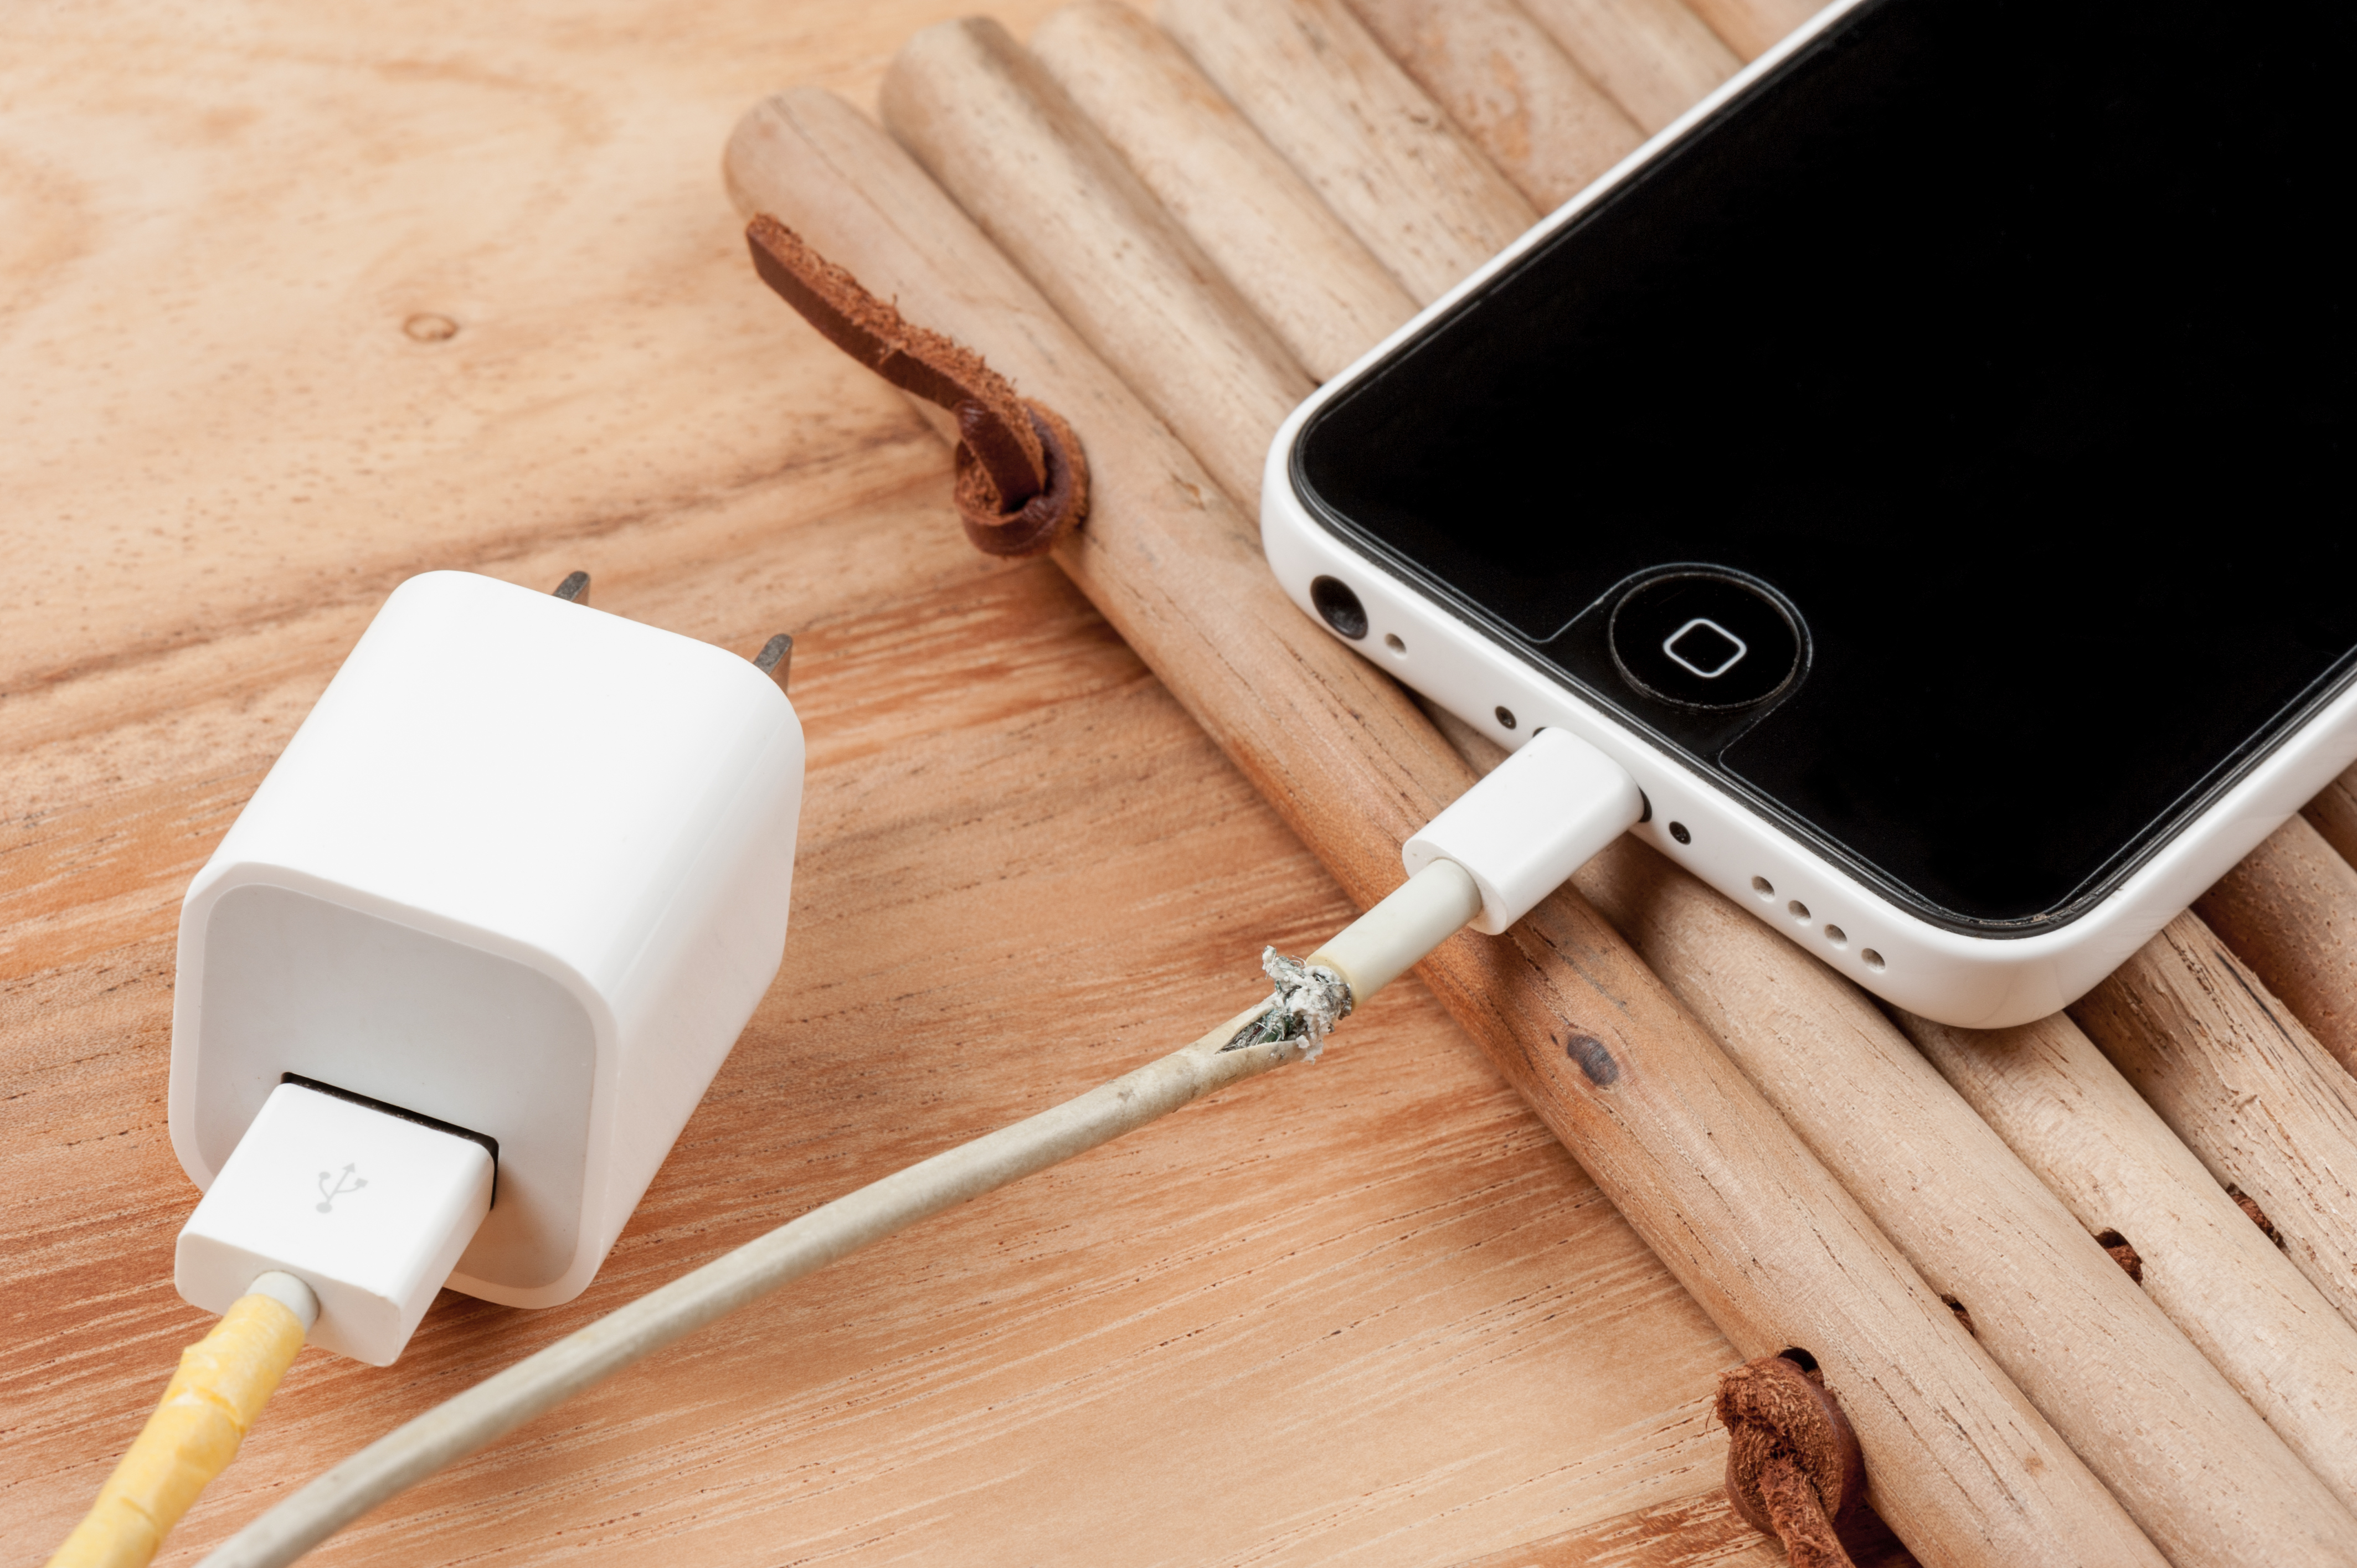 336366c5057fa0 Why Counterfeit Lightning Cables Kill iPhones - VICE